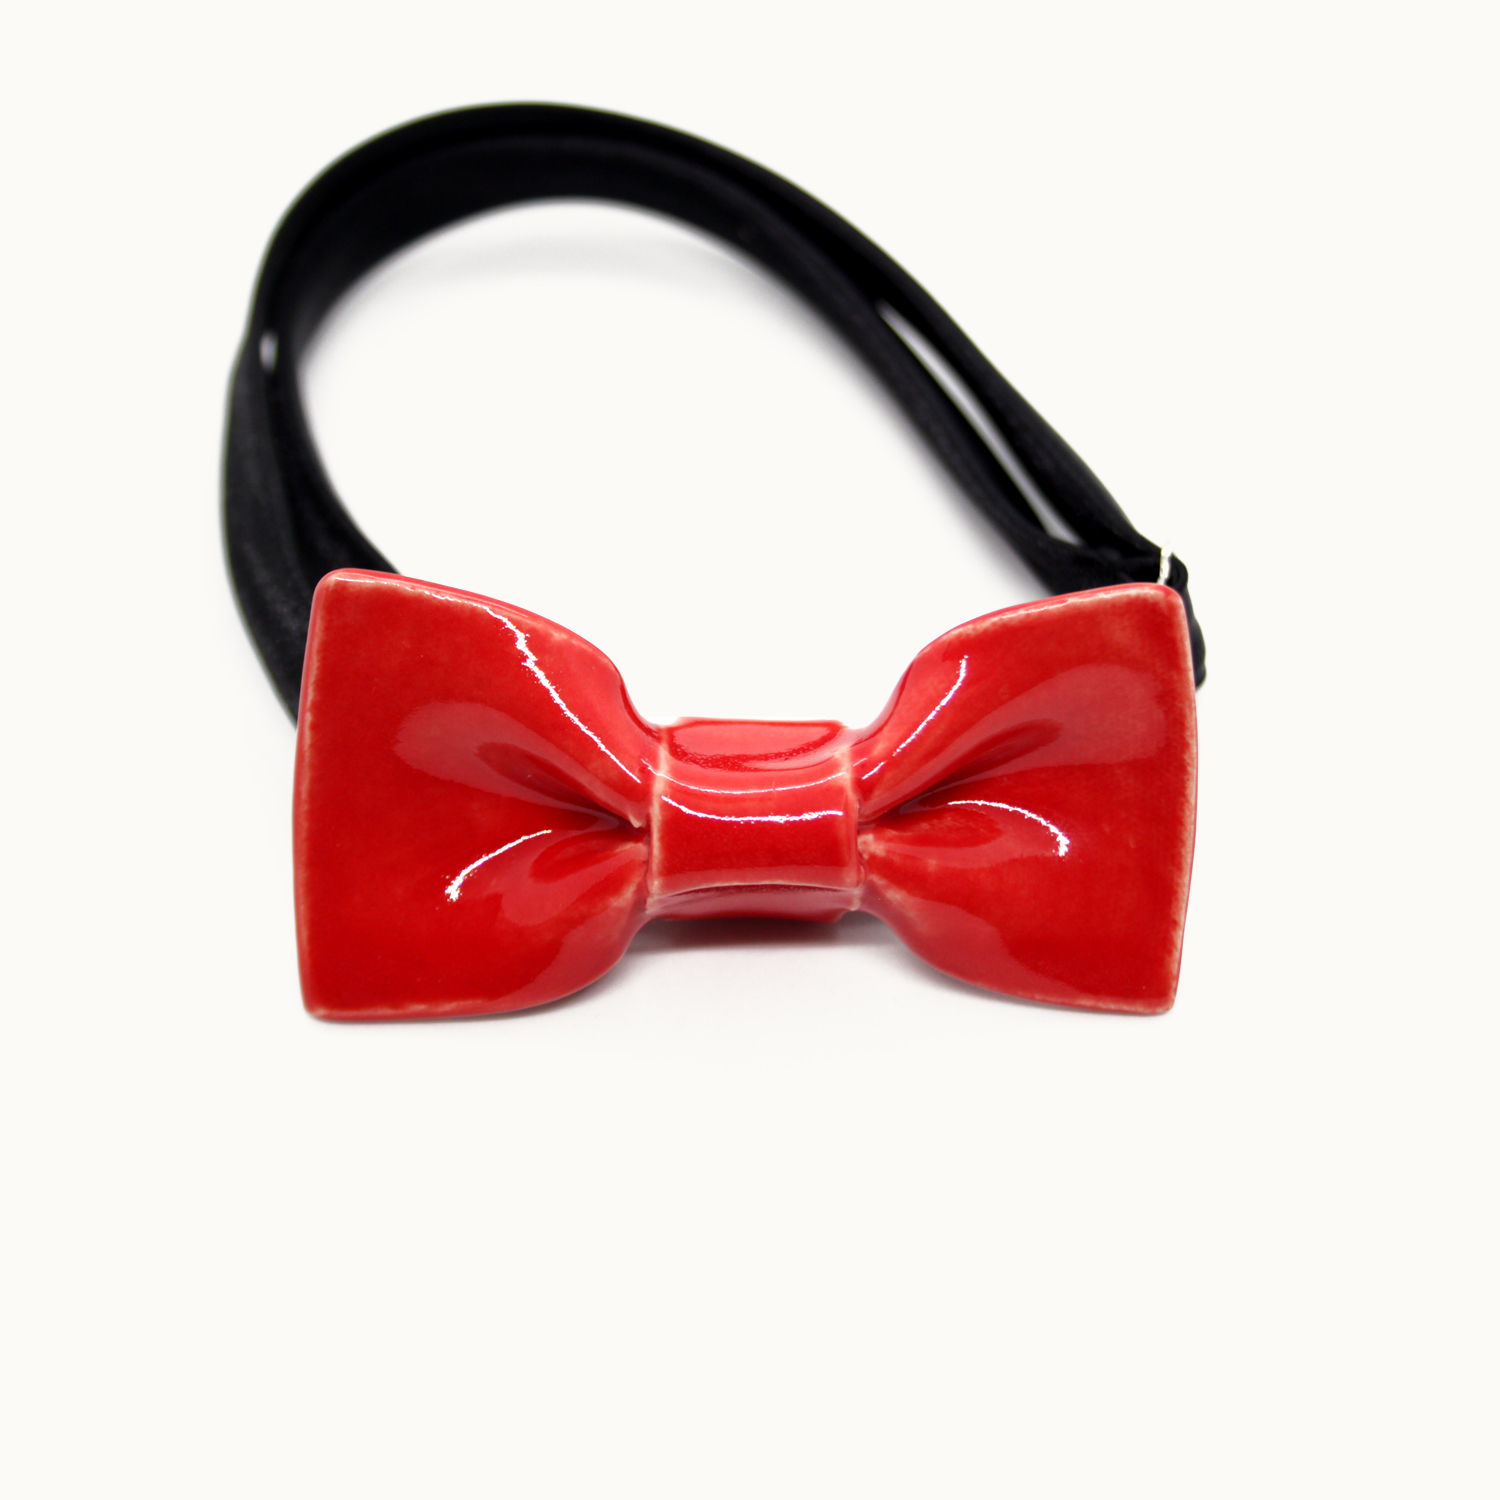 Pajarita de cerámica mini pequeña Bowtery Red ideal para niños y para looks minimalistas hecha a mano. Handmade ceramic bow tie mini red ideal for kids and minimalist looks.